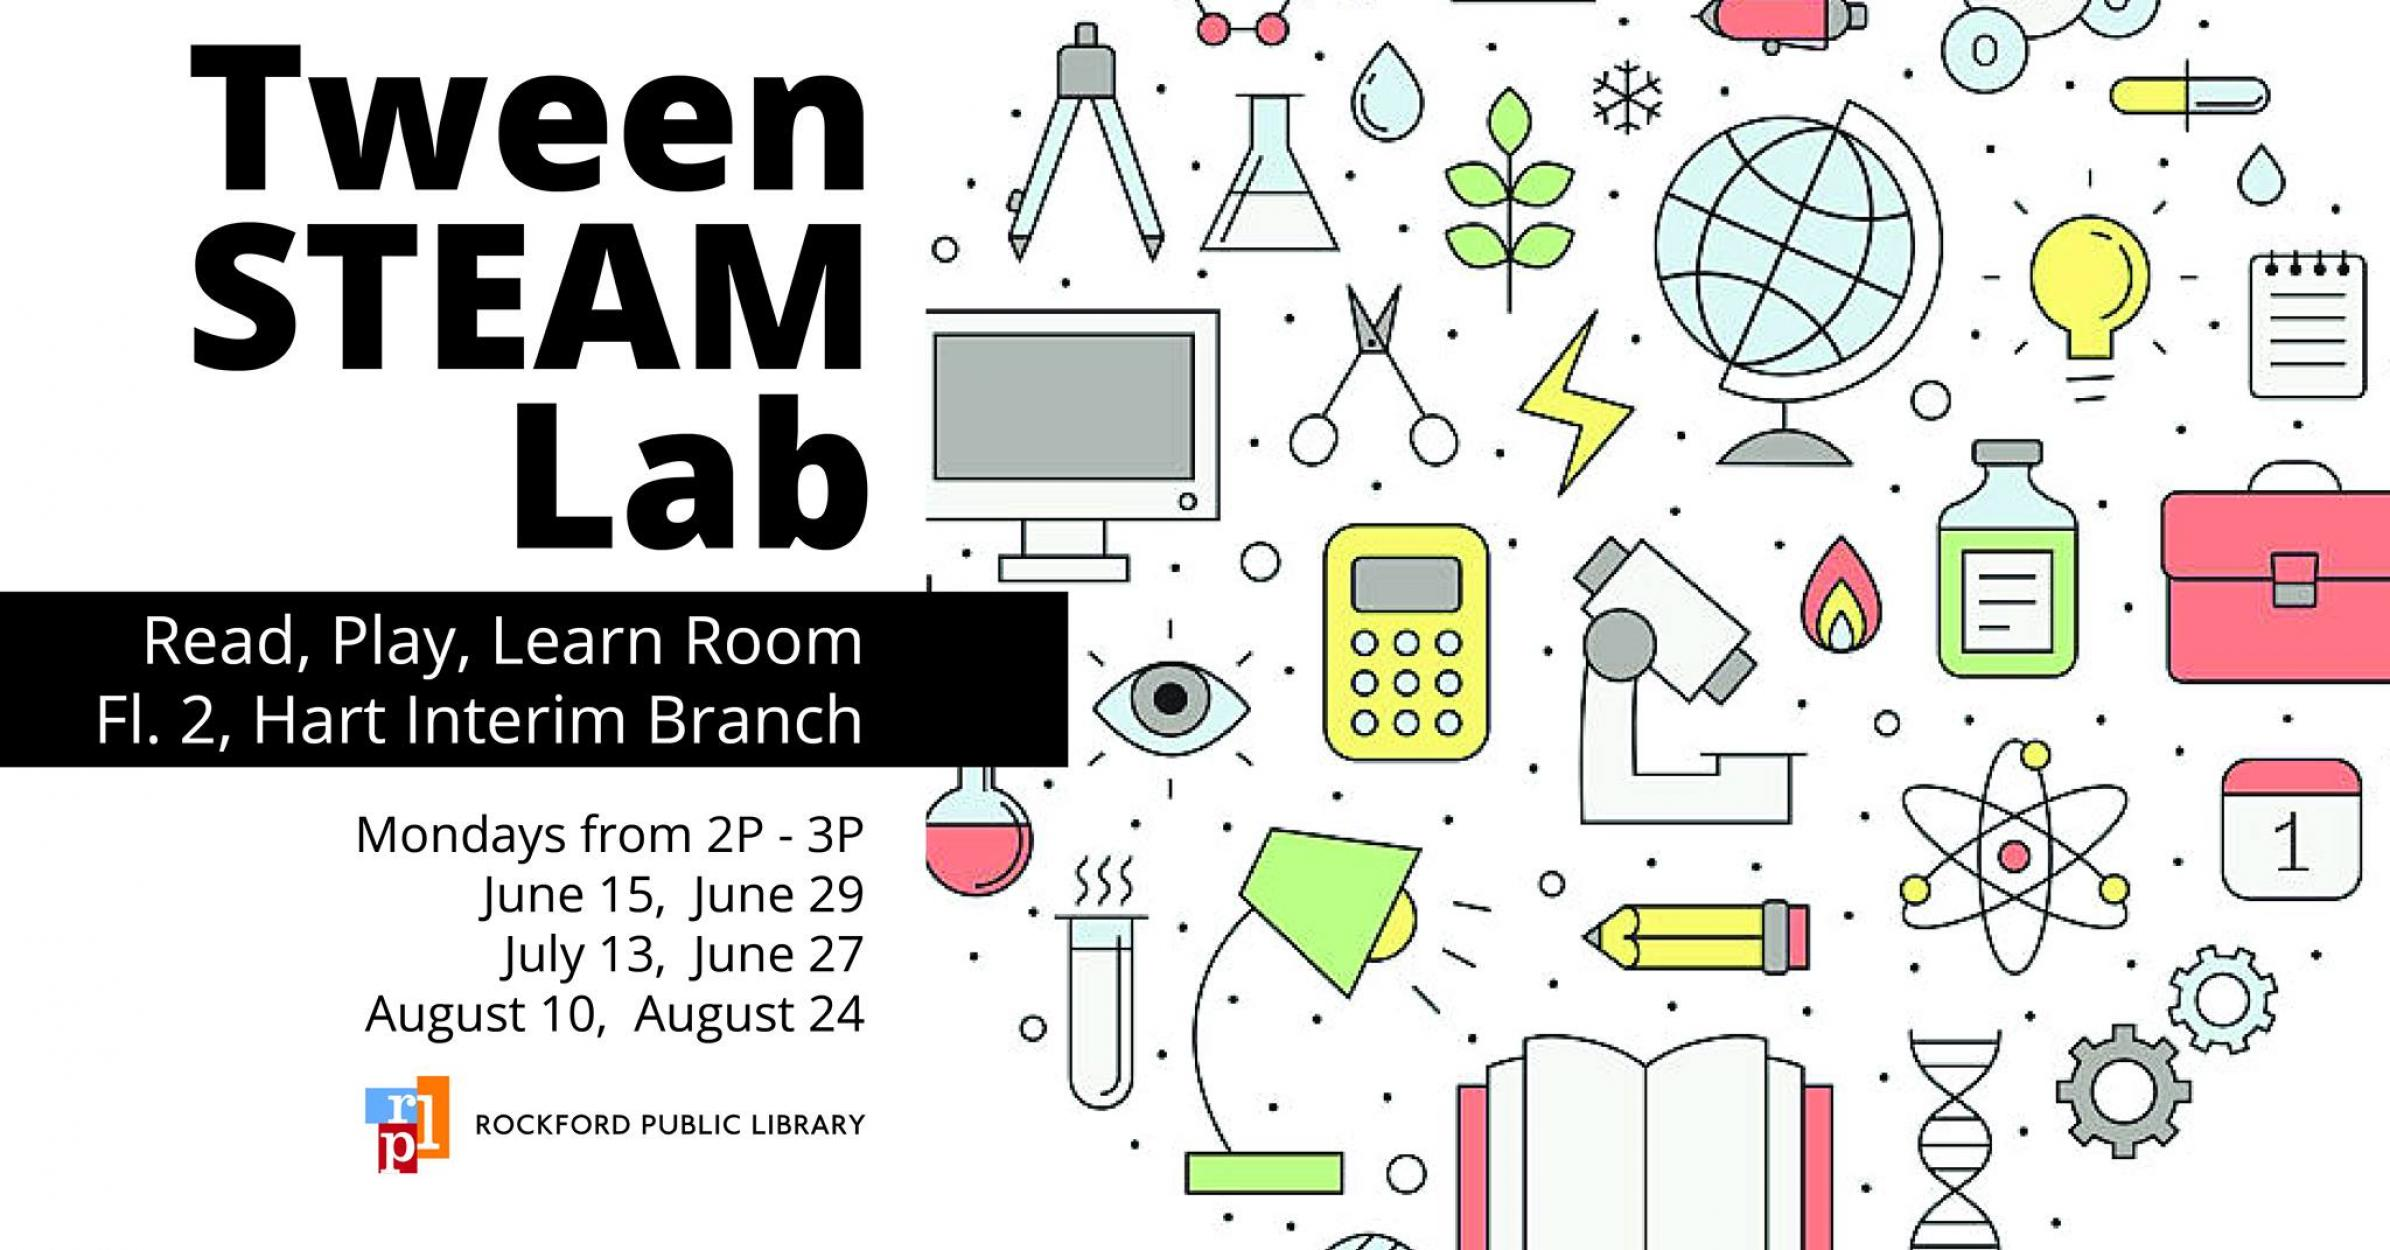 Tween STEAM Lab